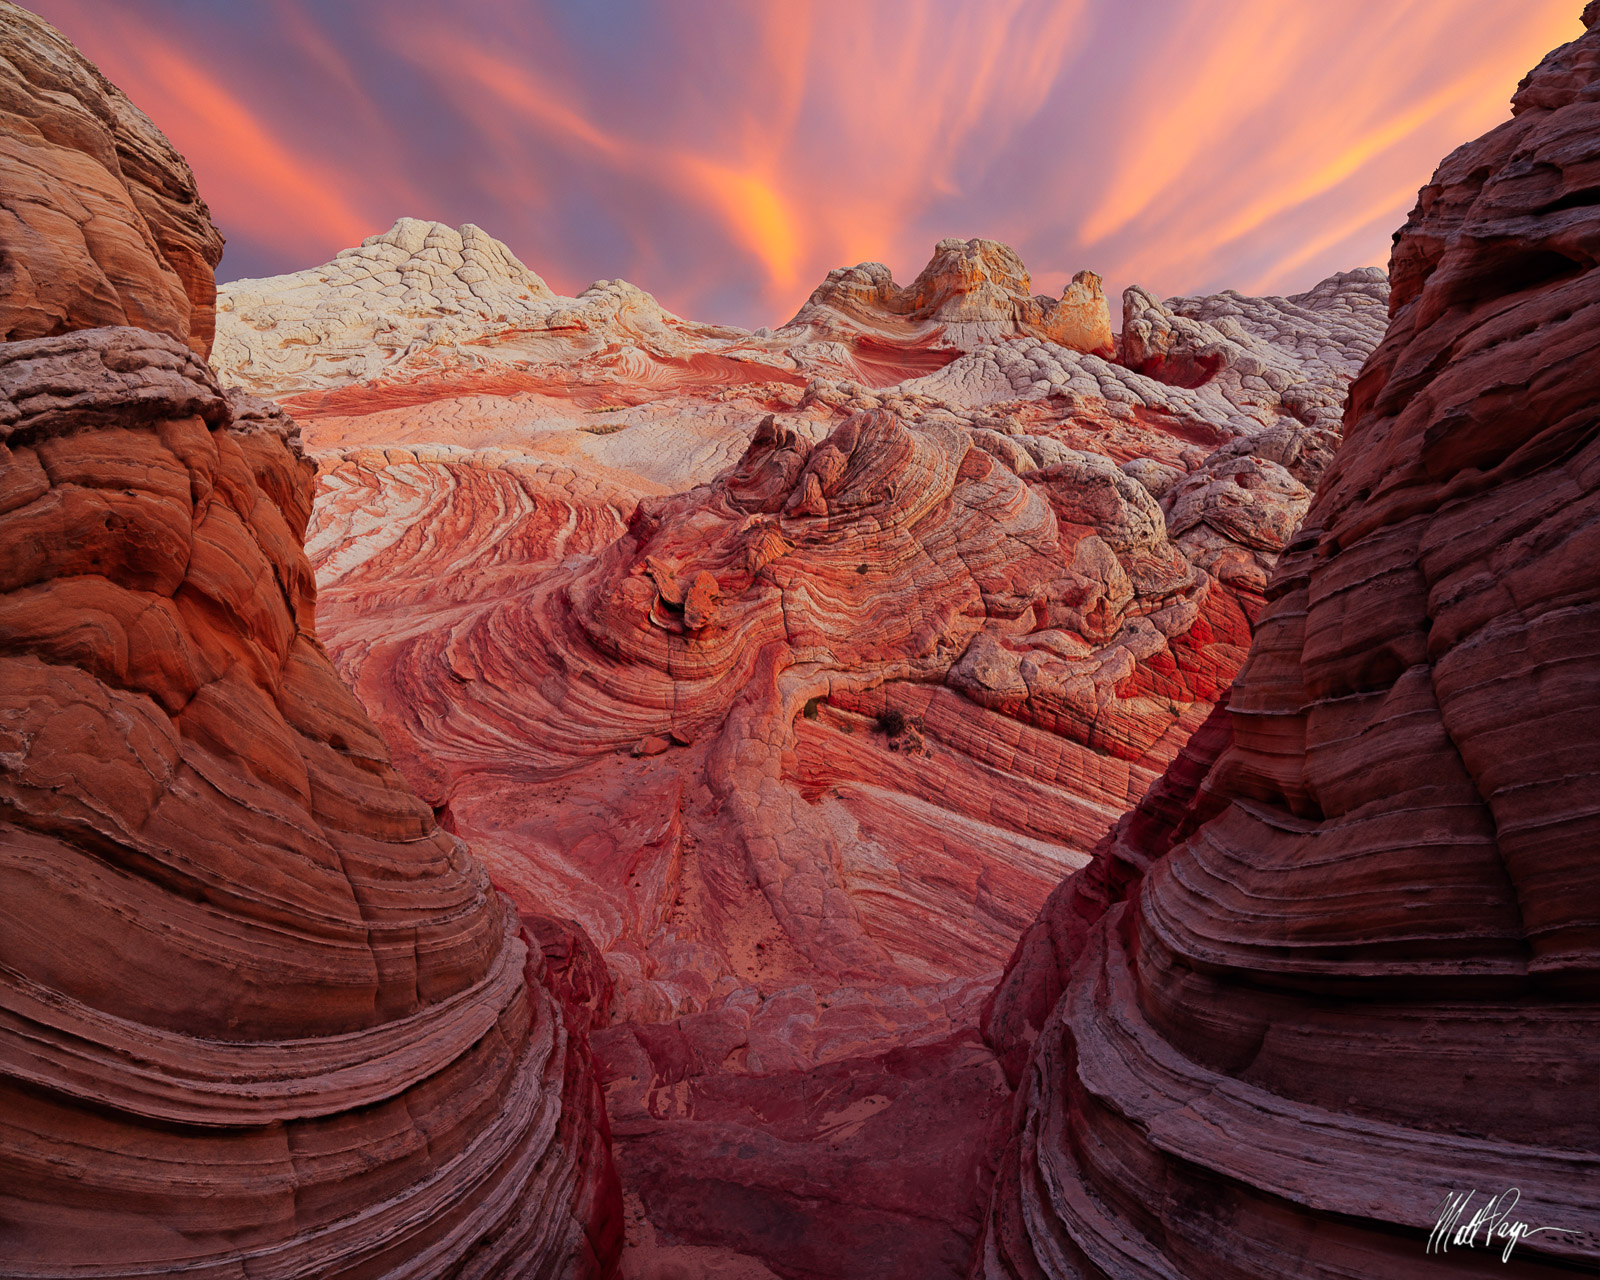 Arizona, Clouds, Dragon, Eye, Glow, Landscape, March, Rock, Rocks, Sandstone, Sony A7R2, Southwest, Spring, Sublime, Sunset, Vermillion Cliffs National Monument, desert, red light, soft, photo